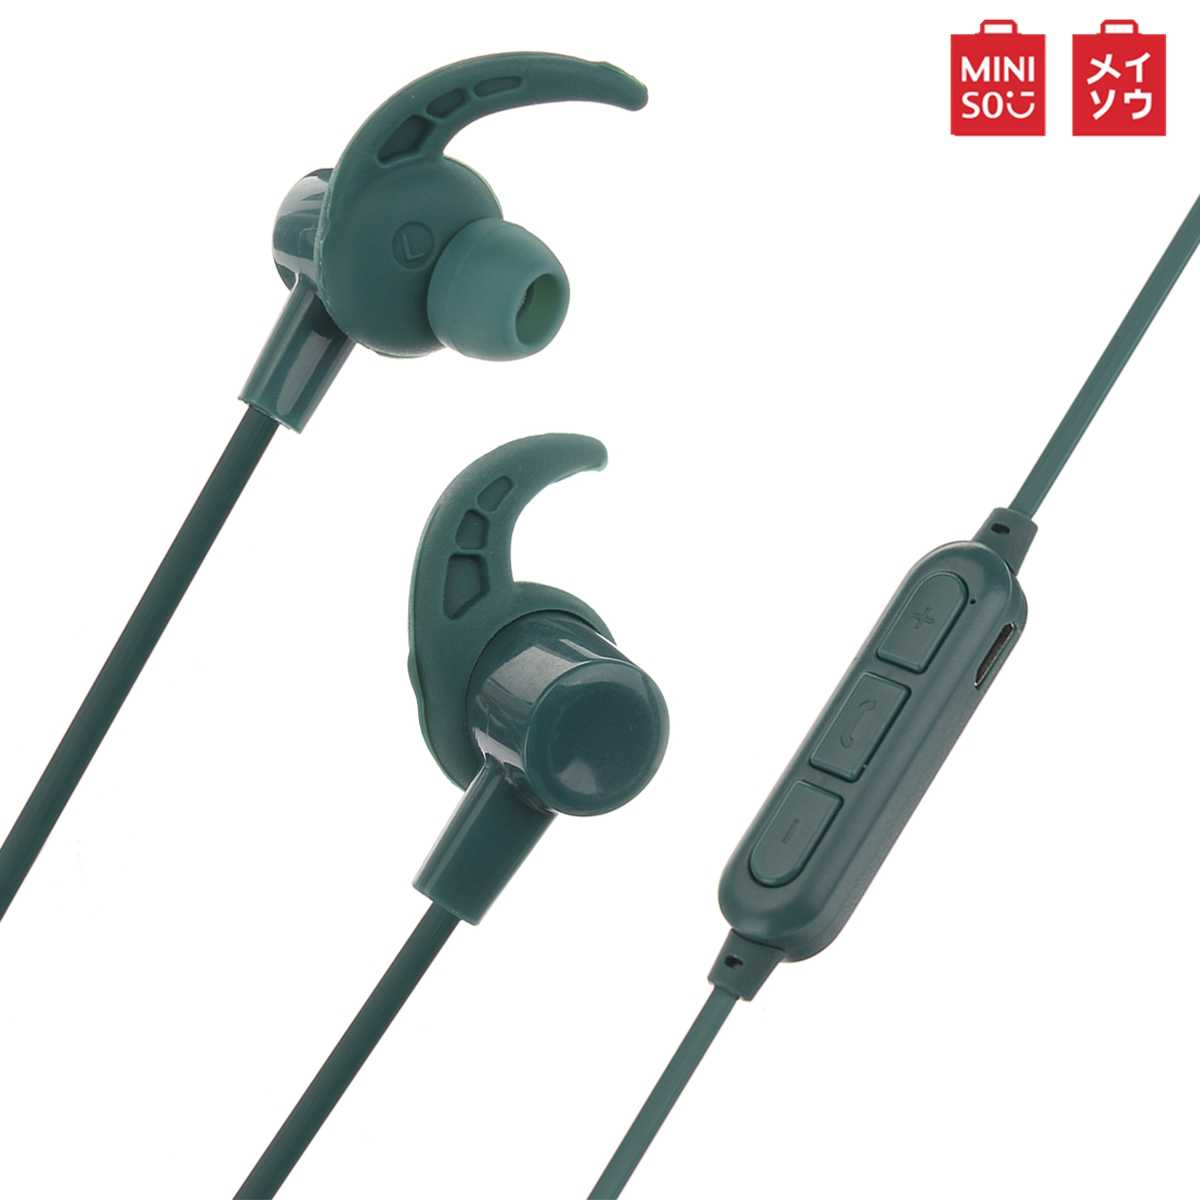 Miniso BT307 Magnetic Bluetooth Earphone Nirkabel Headphone Stereo Earphone Sport Headset Concision Style untuk Ponsel